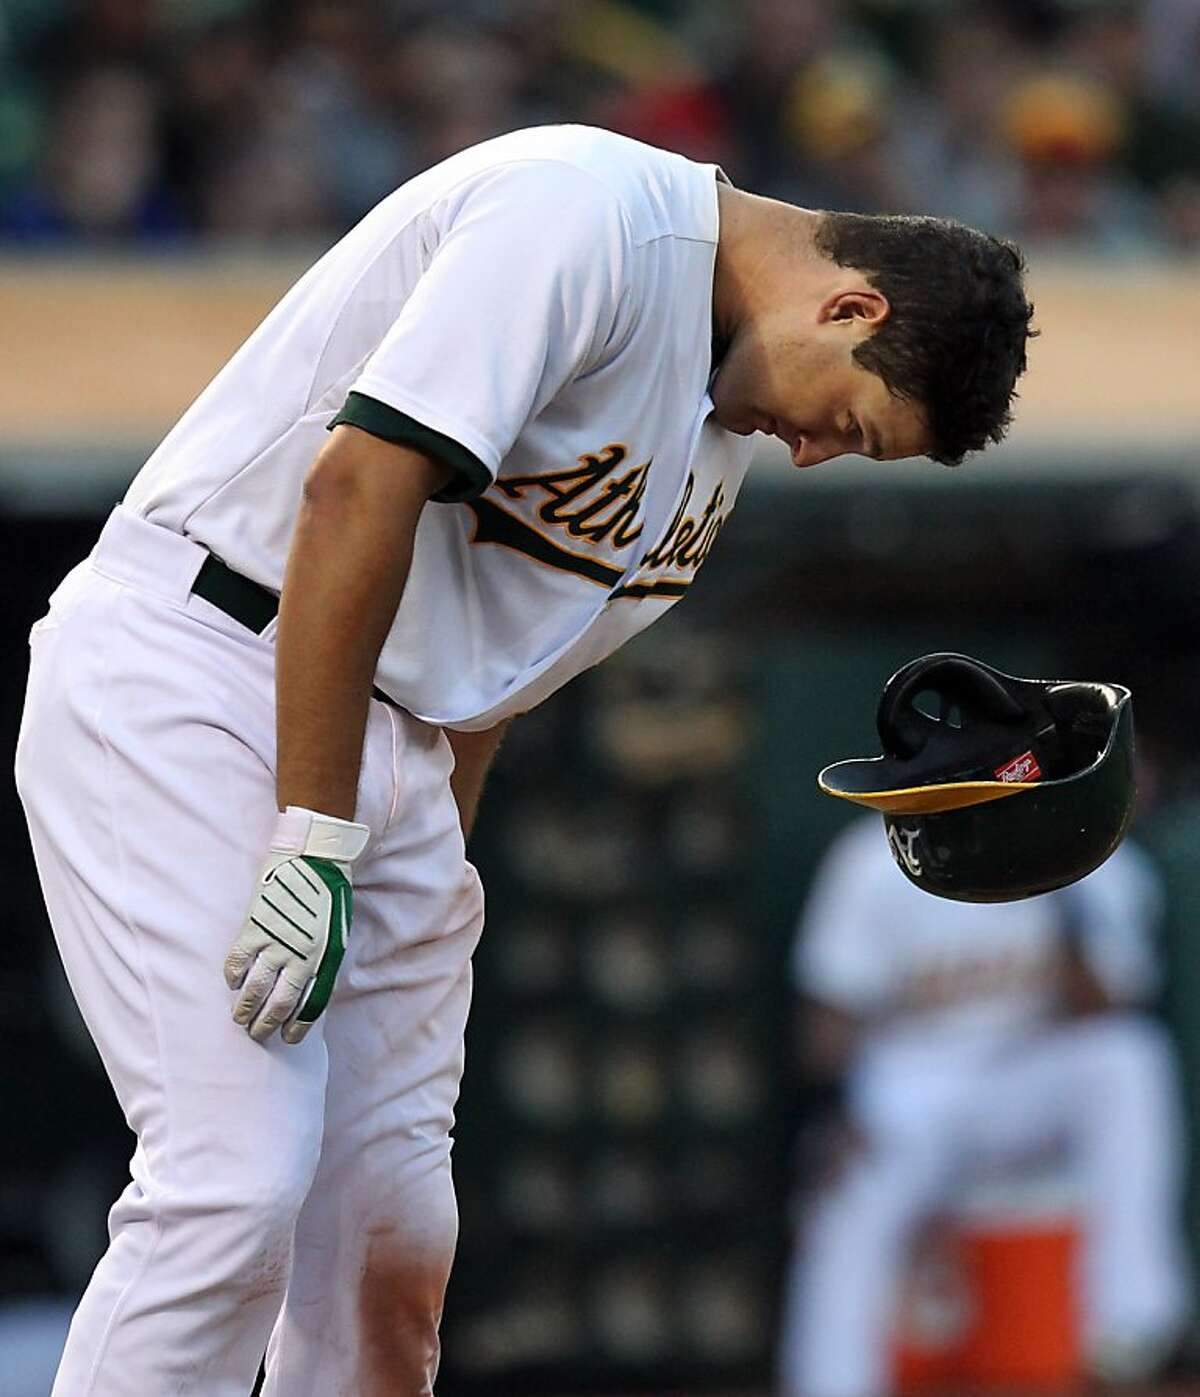 Oakland Athletics Nate Freiman reacts to striking out in the 4th inning of their MLB baseball game with the Boston Red Sox Saturday, July 13, 2013, In Oakland CA.